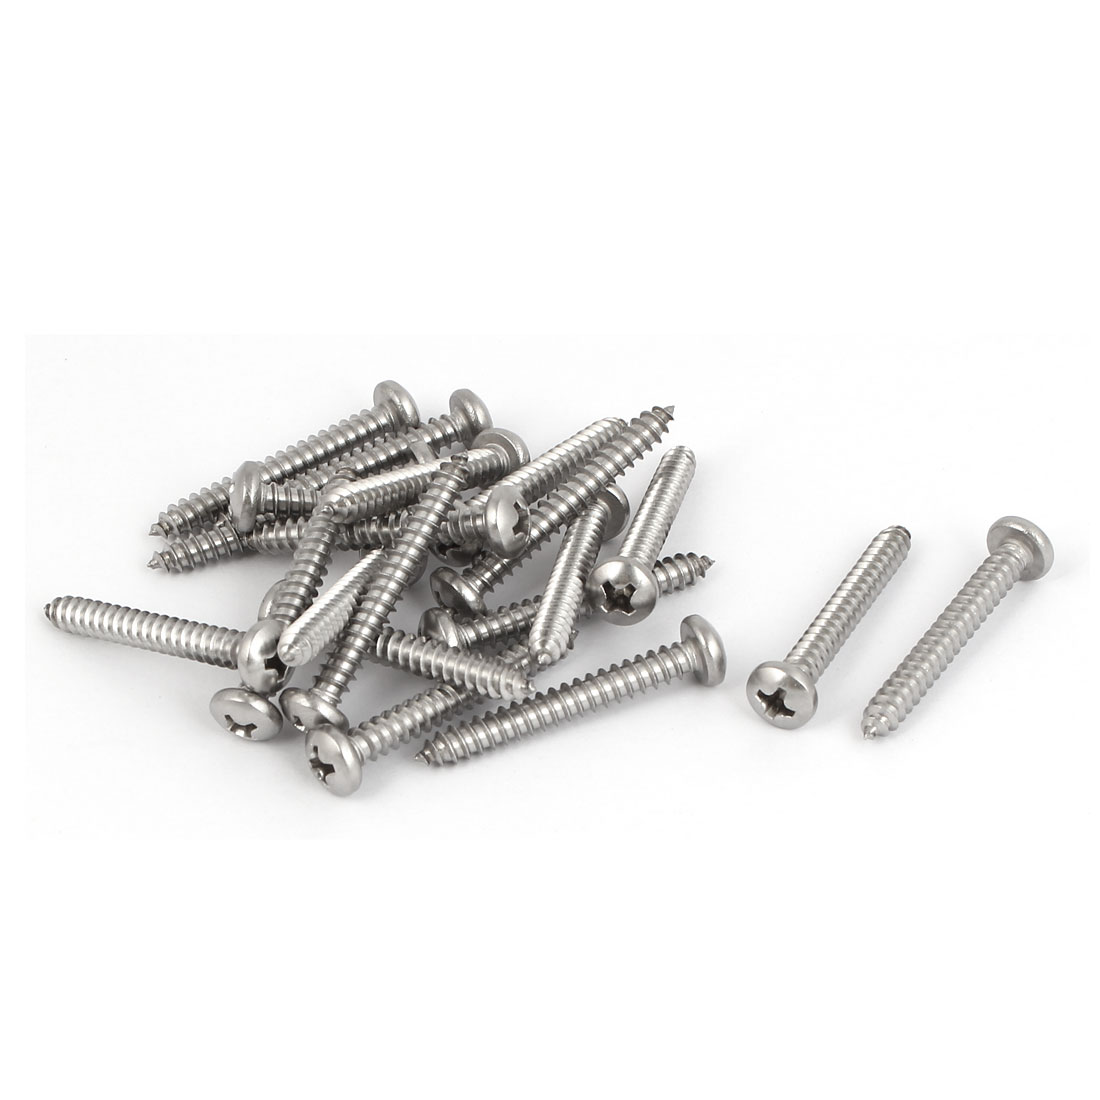 M4.2x32mm 316 Stainless Steel Phillips Pan Head Self Tapping Screws Bolts 20pcs